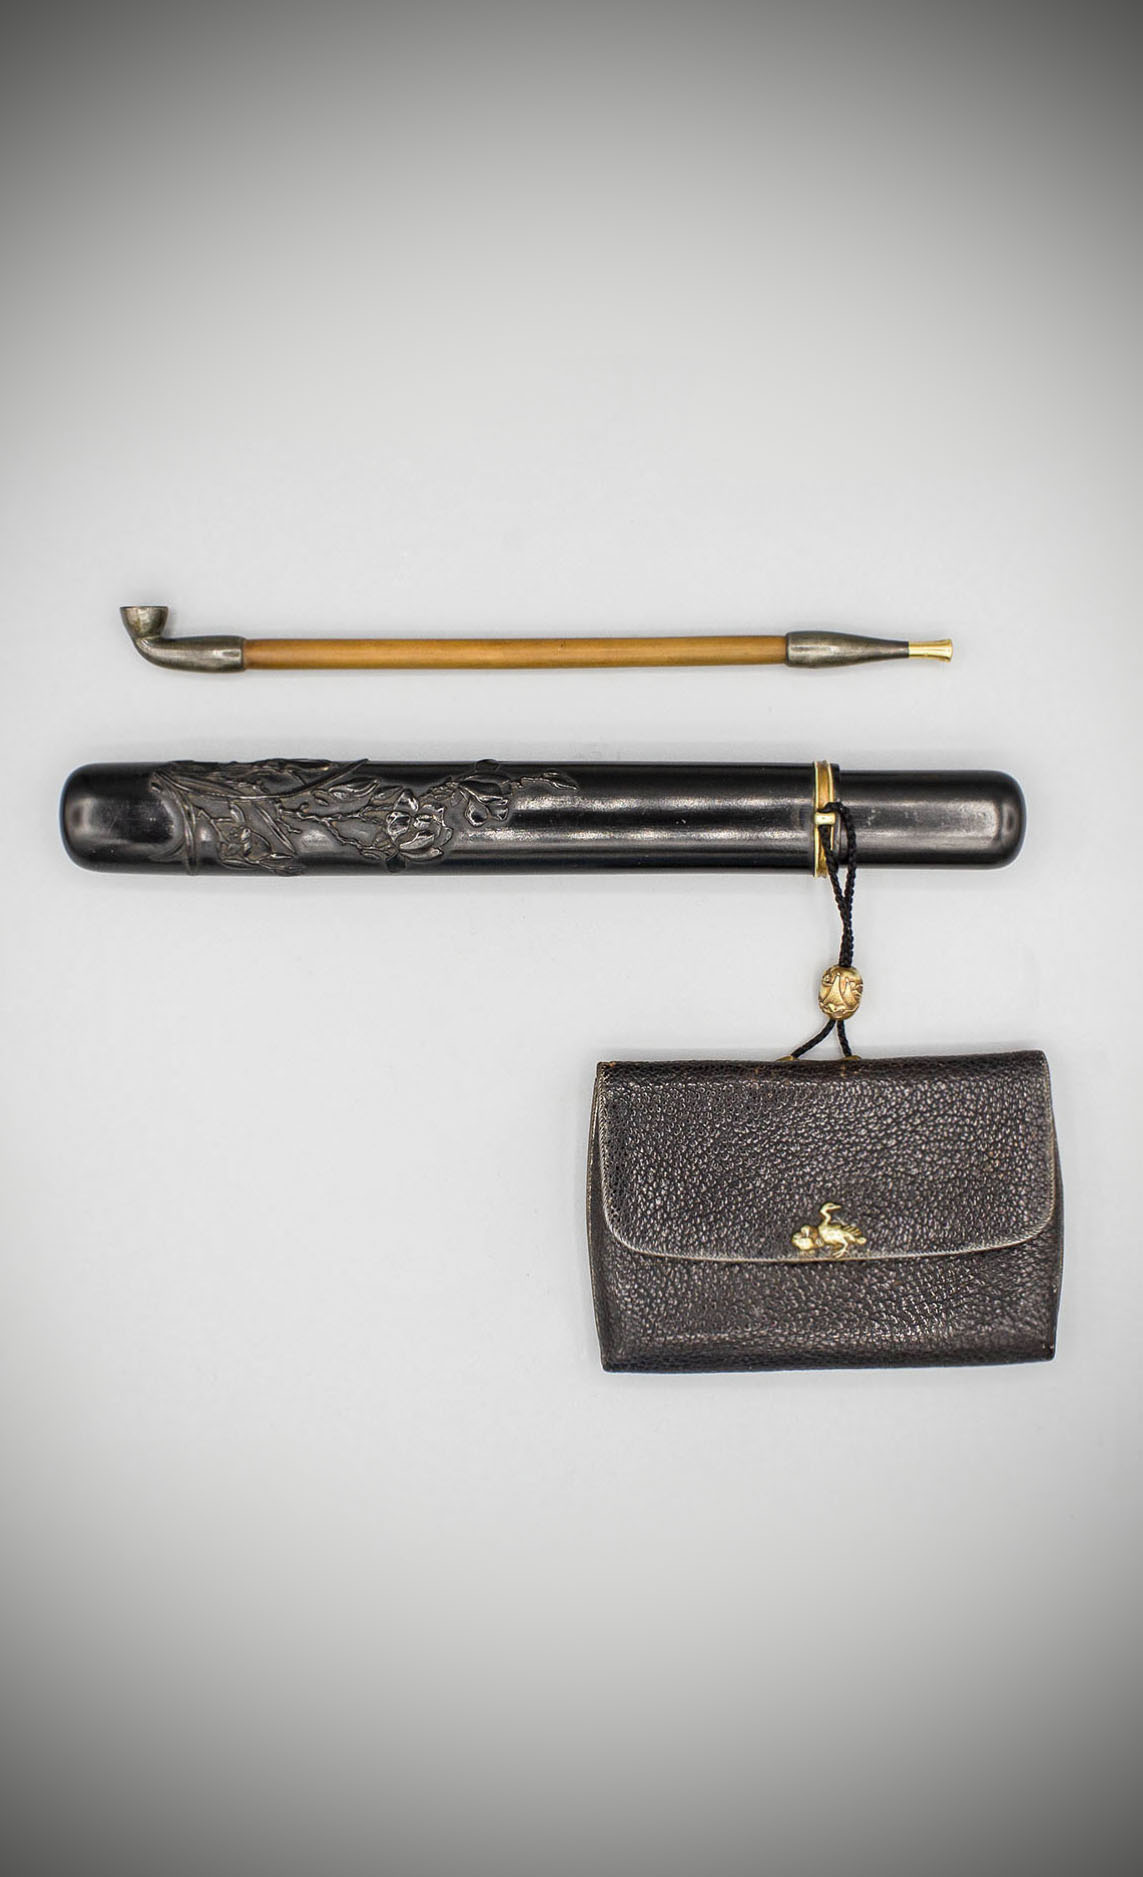 An-elegant-ebony-pipe-case-with-leather-pouch-MR3672_v1-2